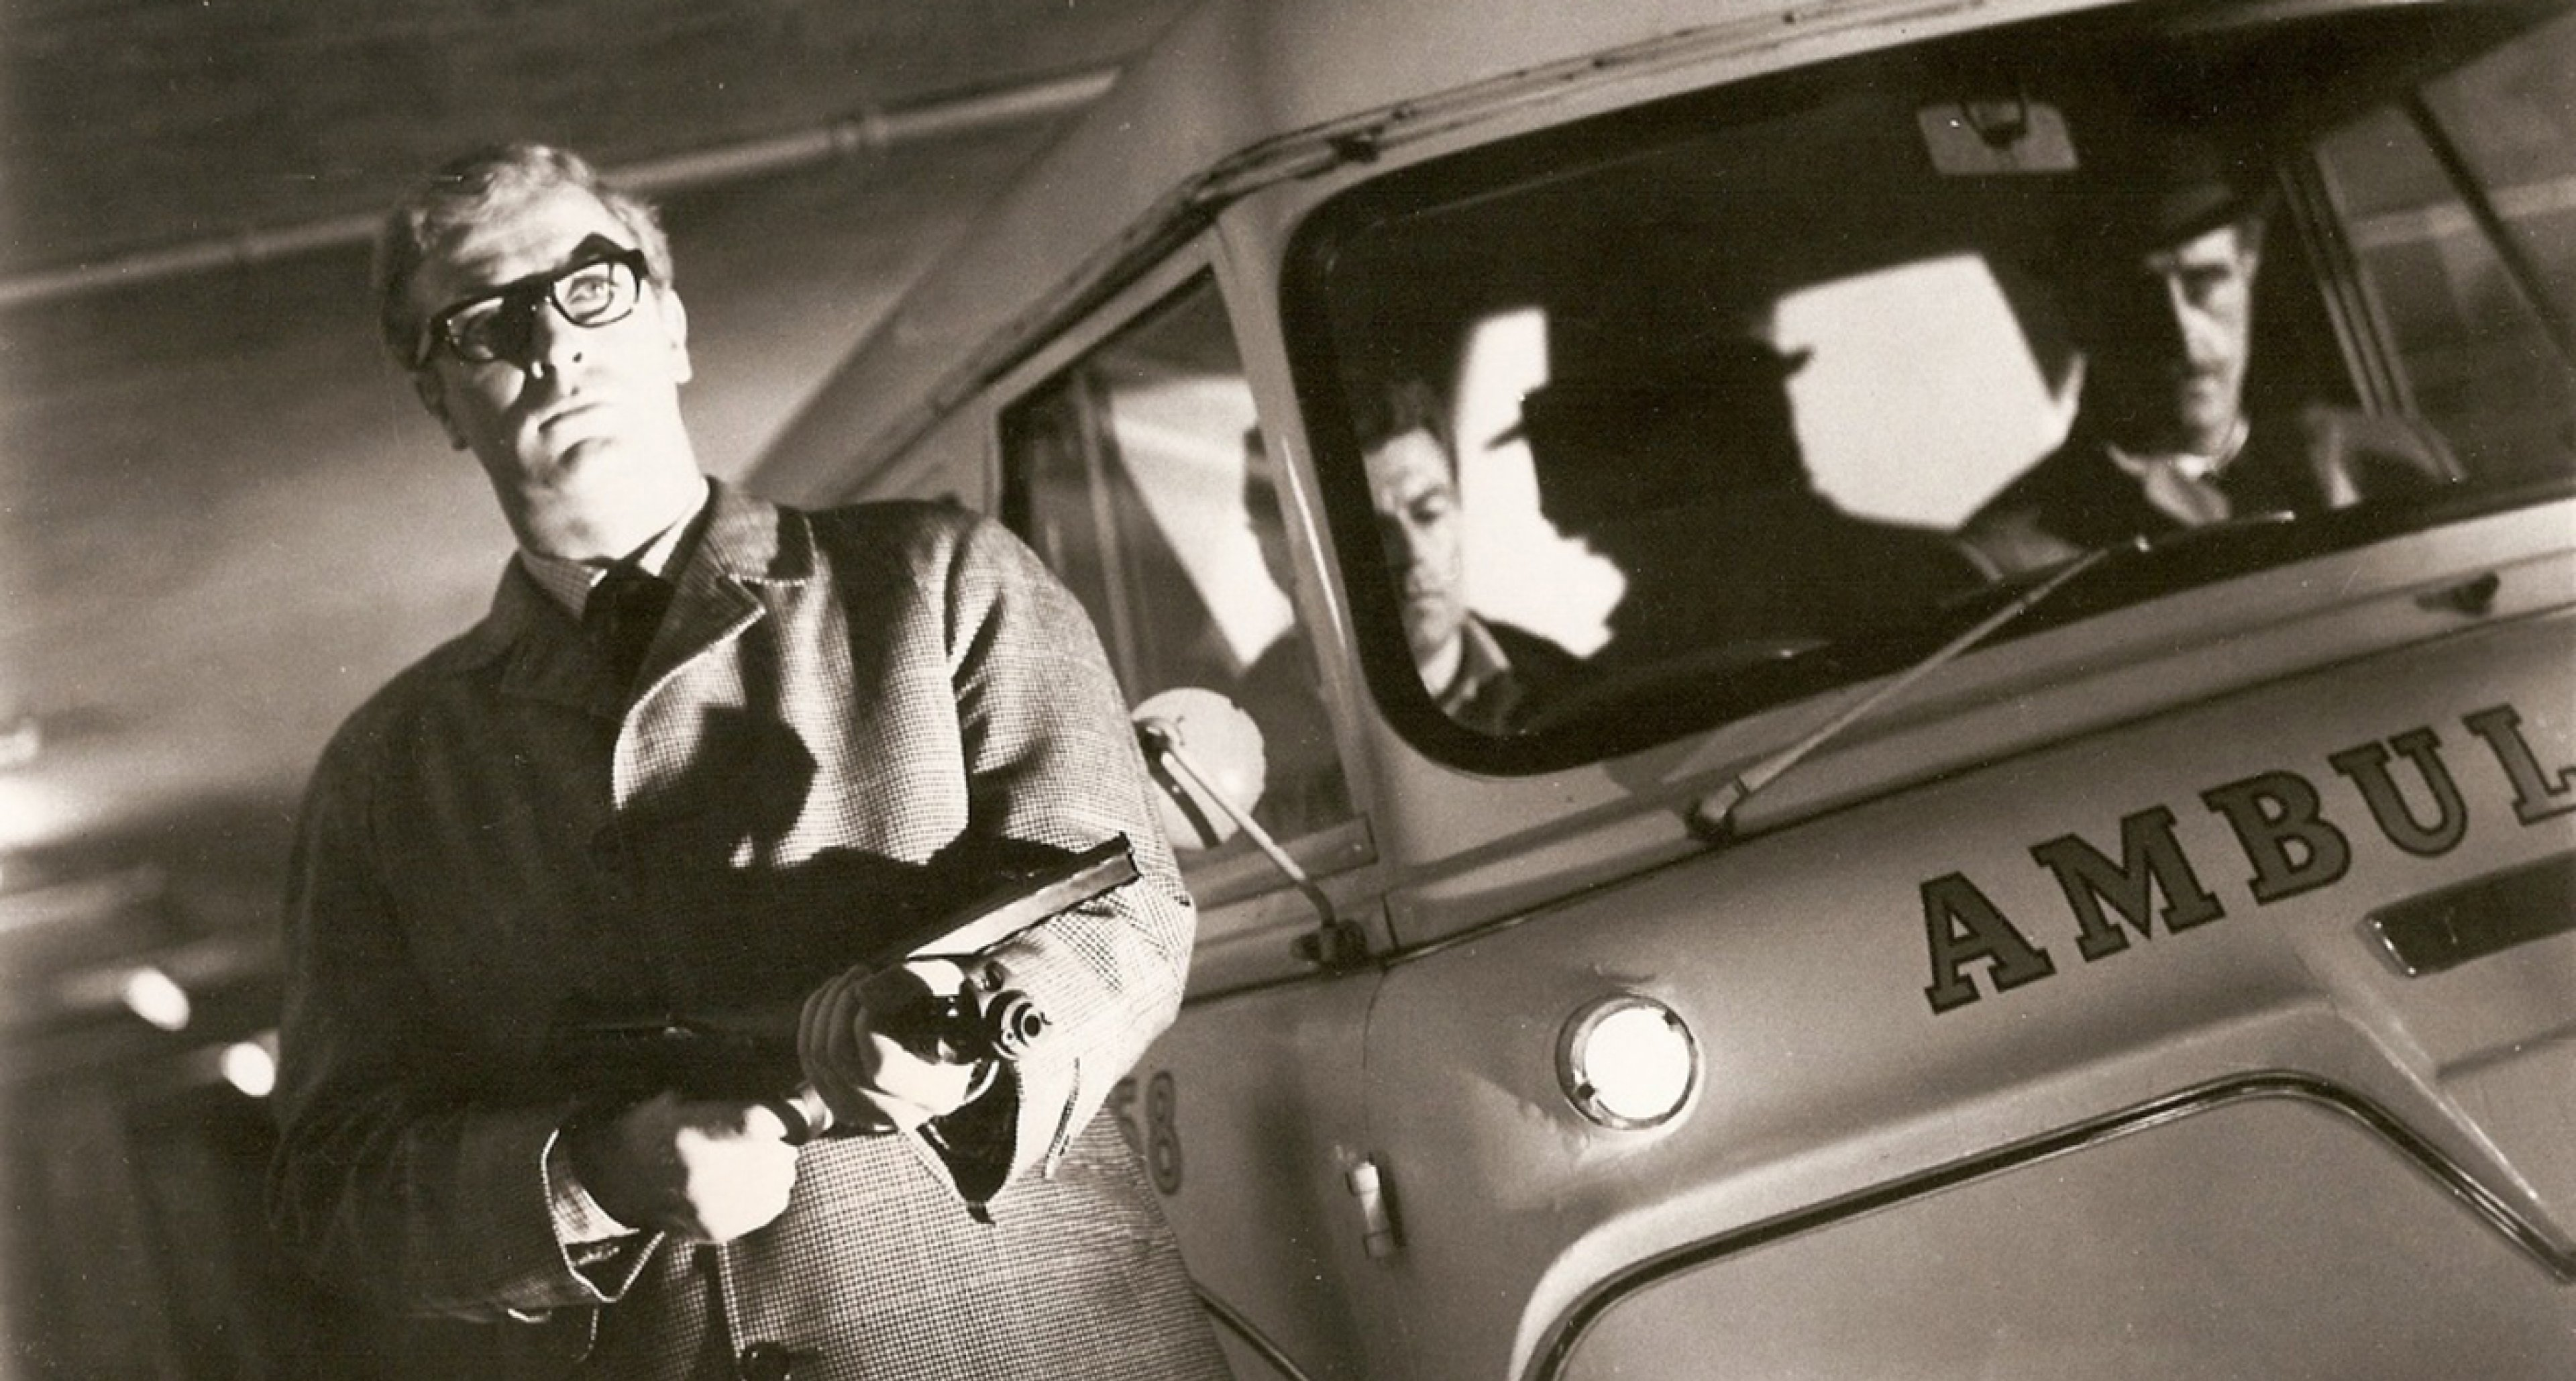 Caine and an ambulance in 'The Ipcress File' (1965).